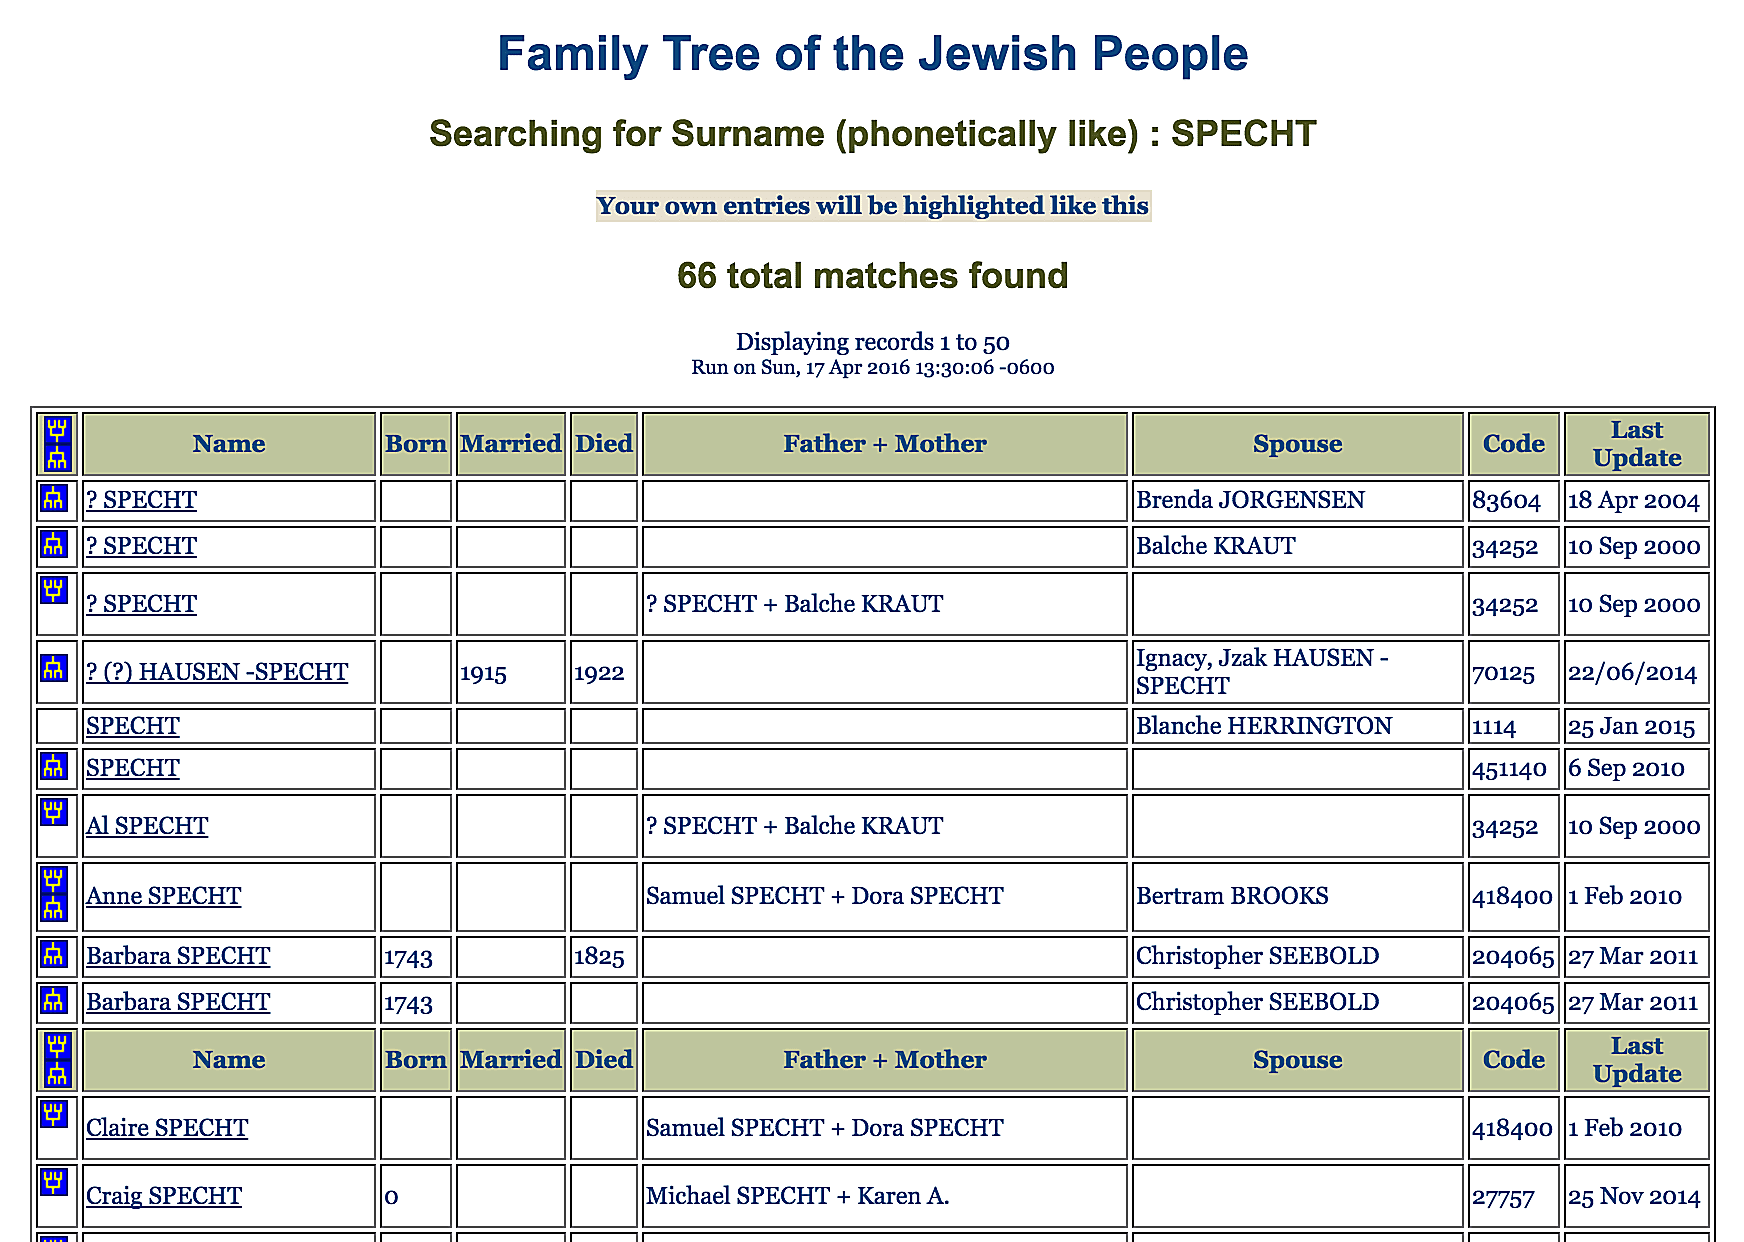 Over 5 million names can be searched in this free, centralized database of Jewish family trees